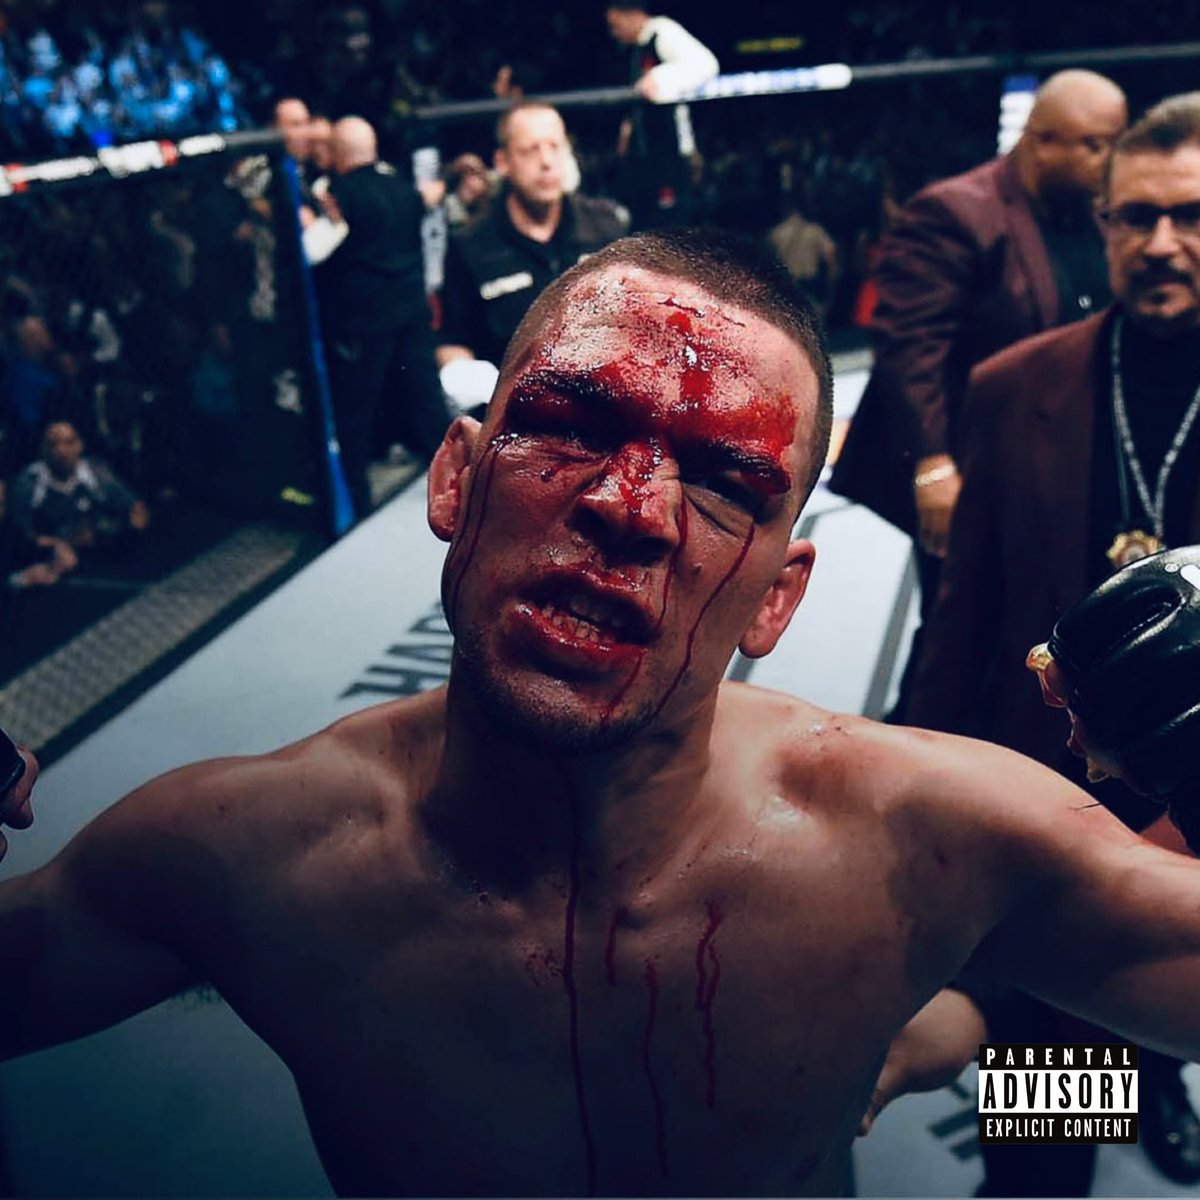 Replying to @ConOfCombat: MMA moments into album covers